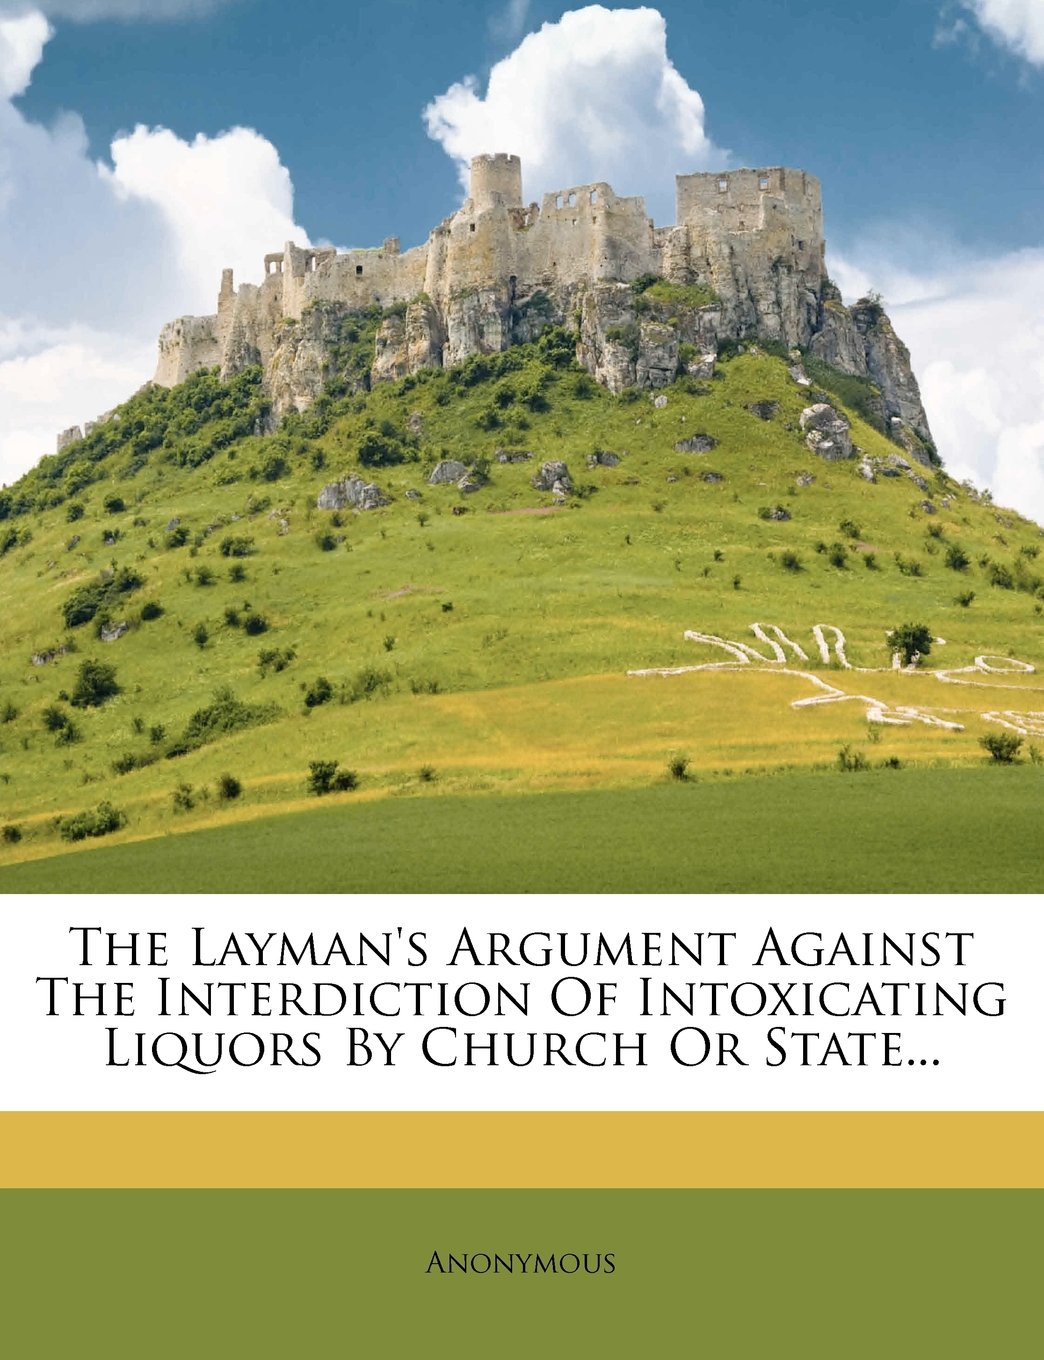 The Layman's Argument Against The Interdiction Of Intoxicating Liquors By Church Or State... PDF